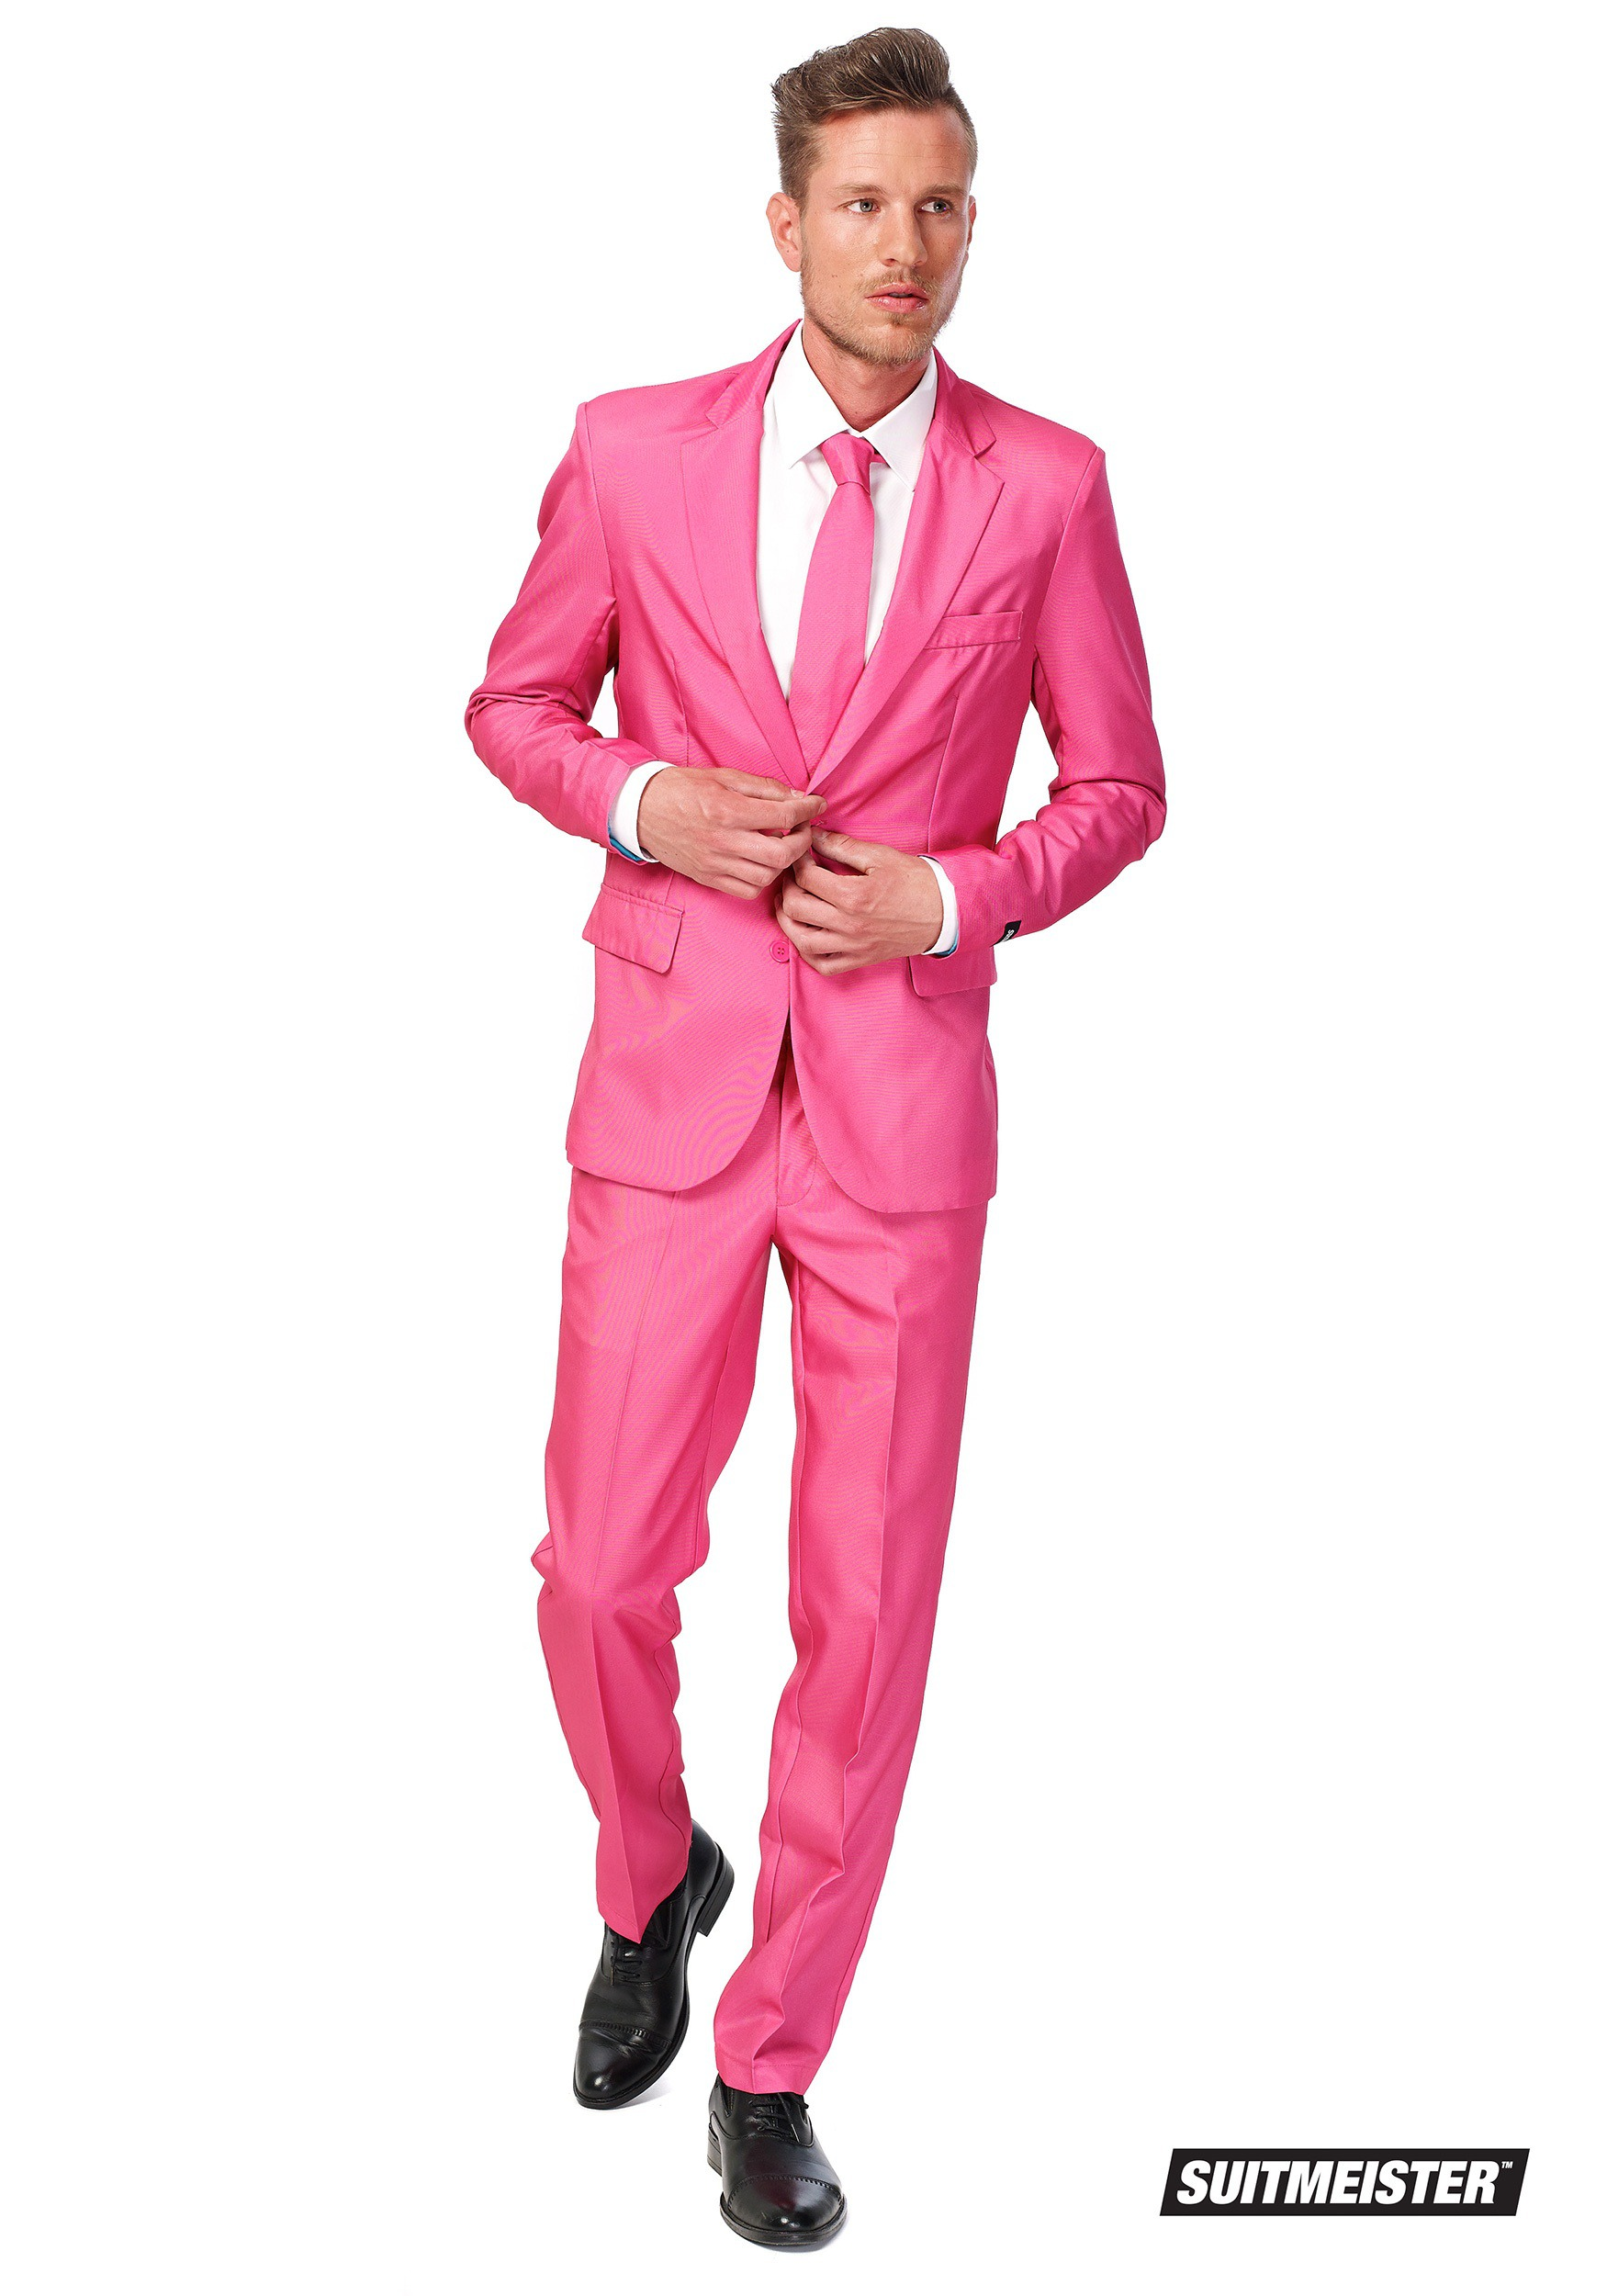 Suitmeister Basic Pink Suit Costume For Men